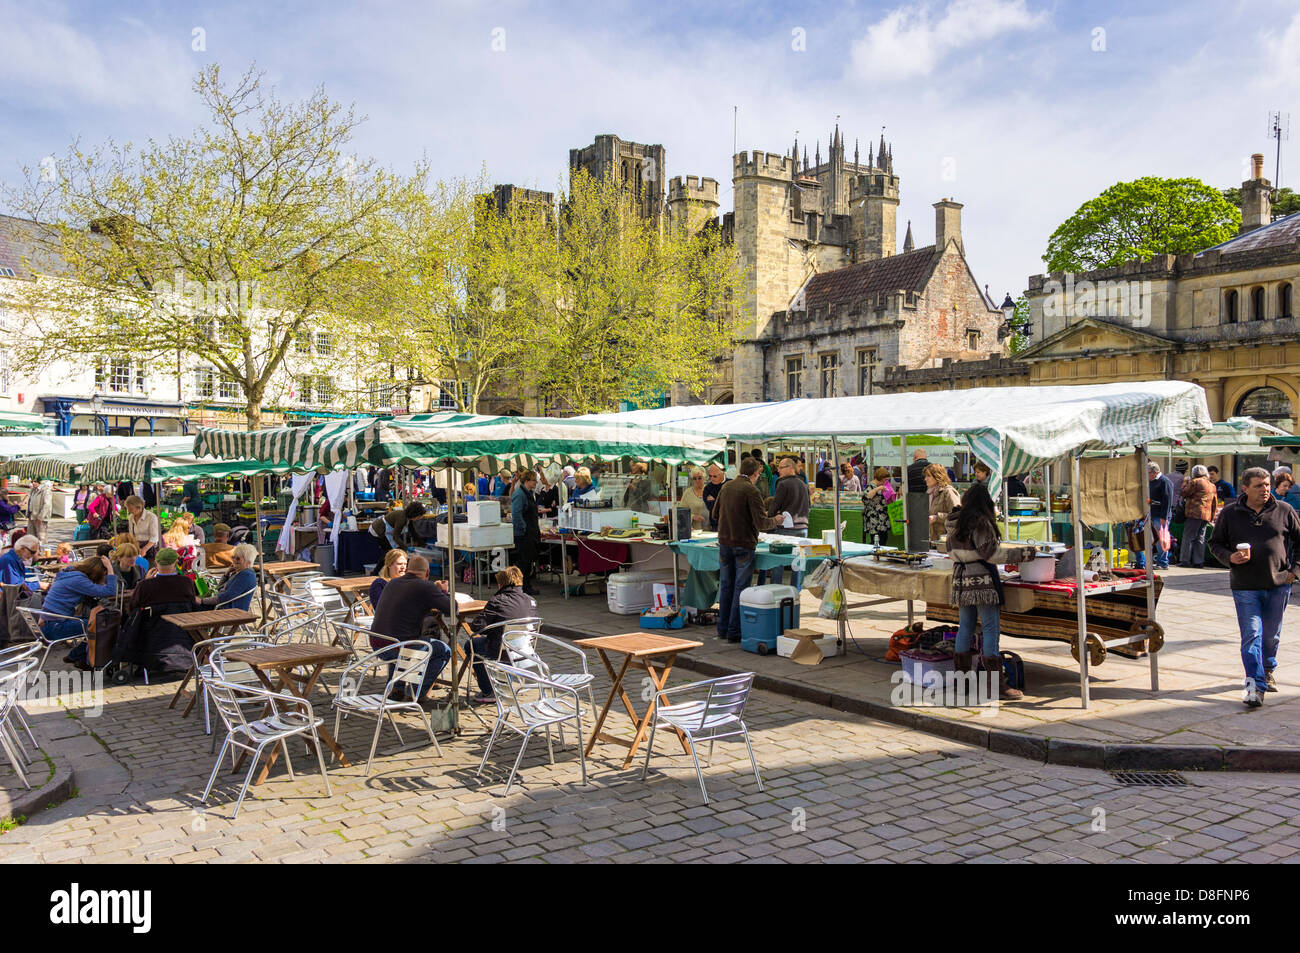 Cafe and Farmers market in Wells, Somerset, England, UK - Stock Image